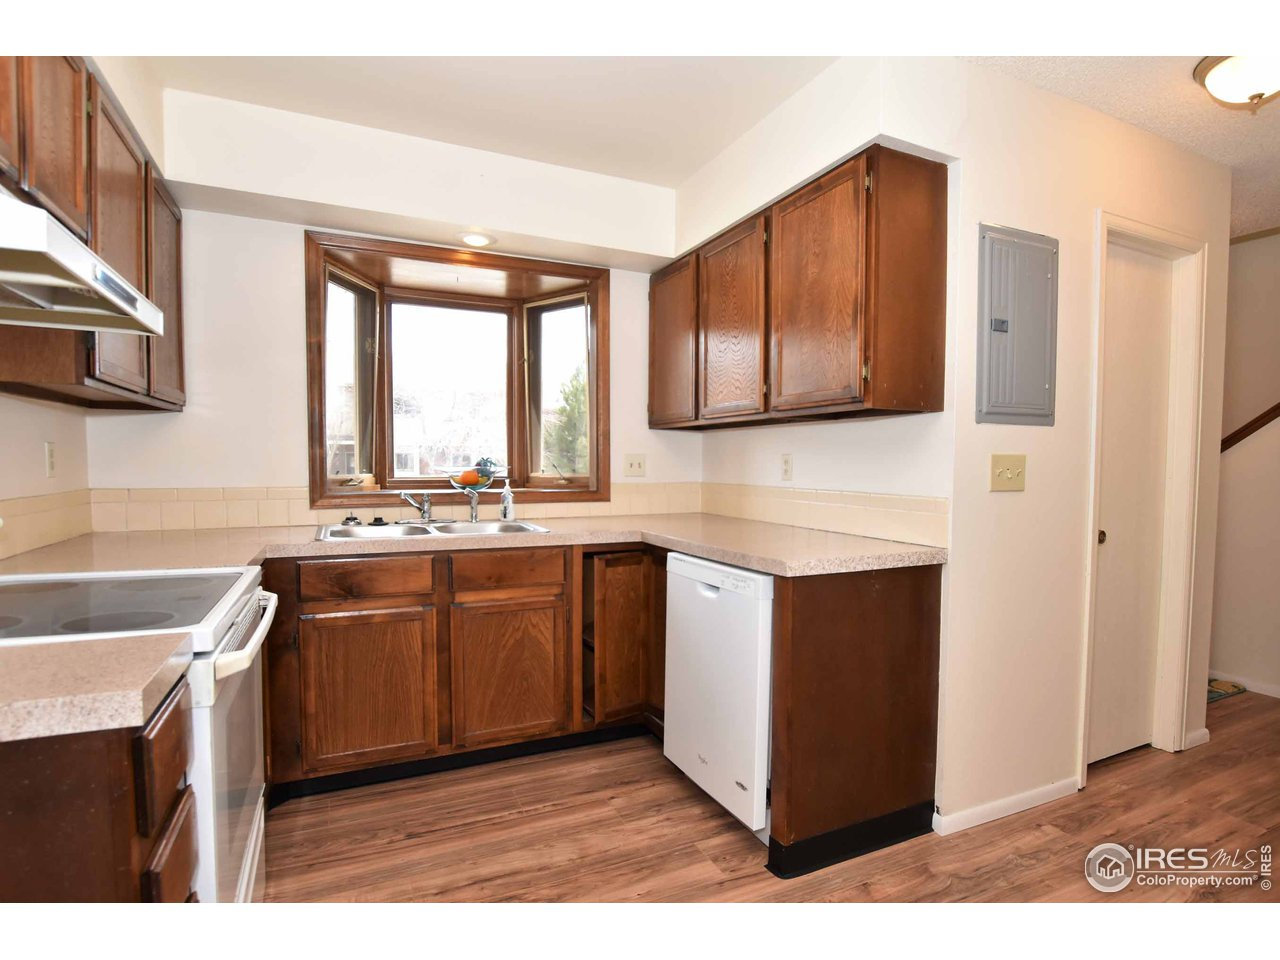 Kitchen with bow window